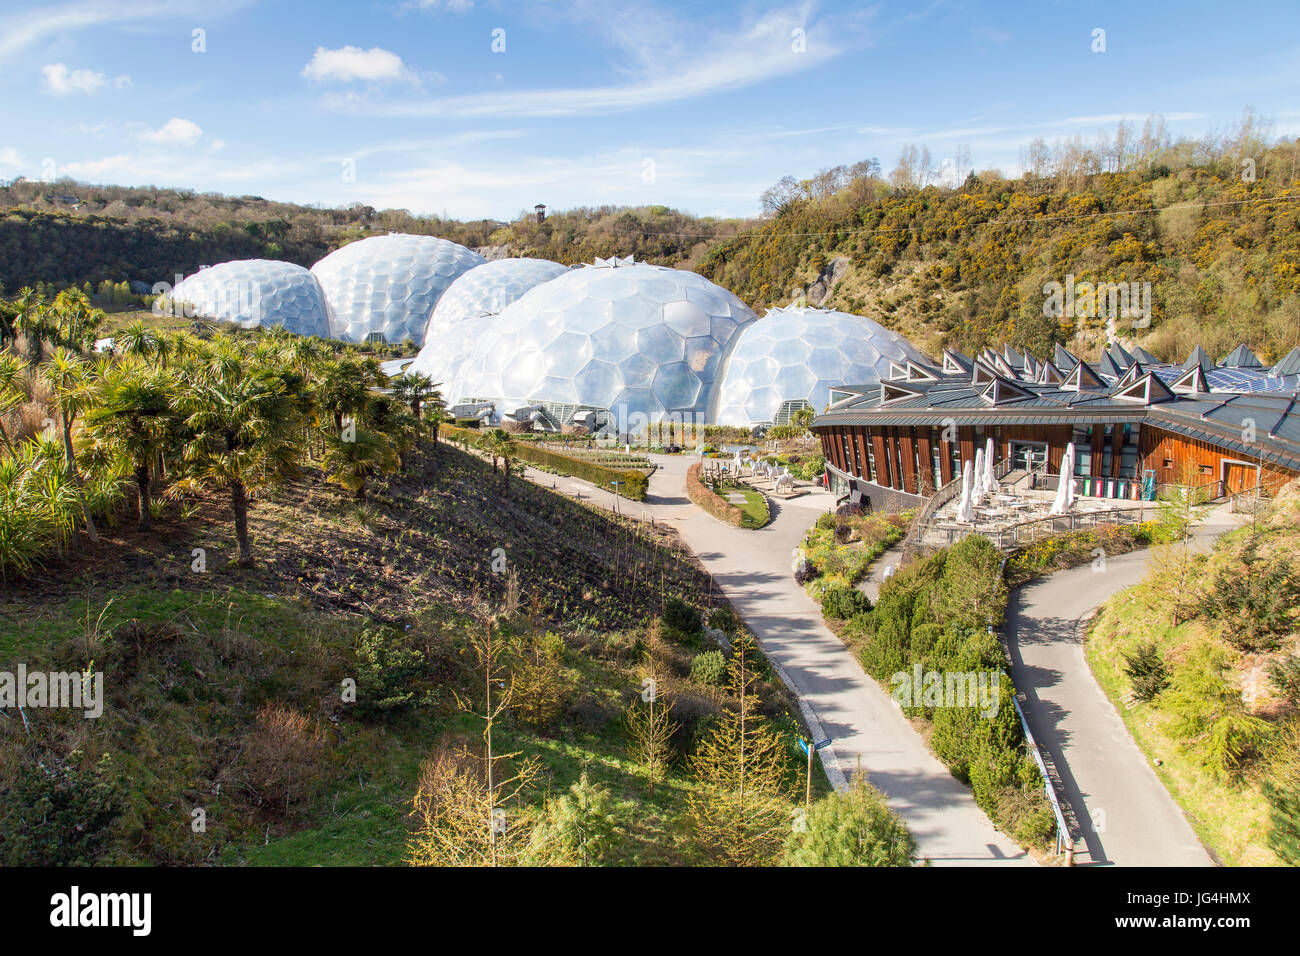 Eden Project - Cornwall - Stock Image